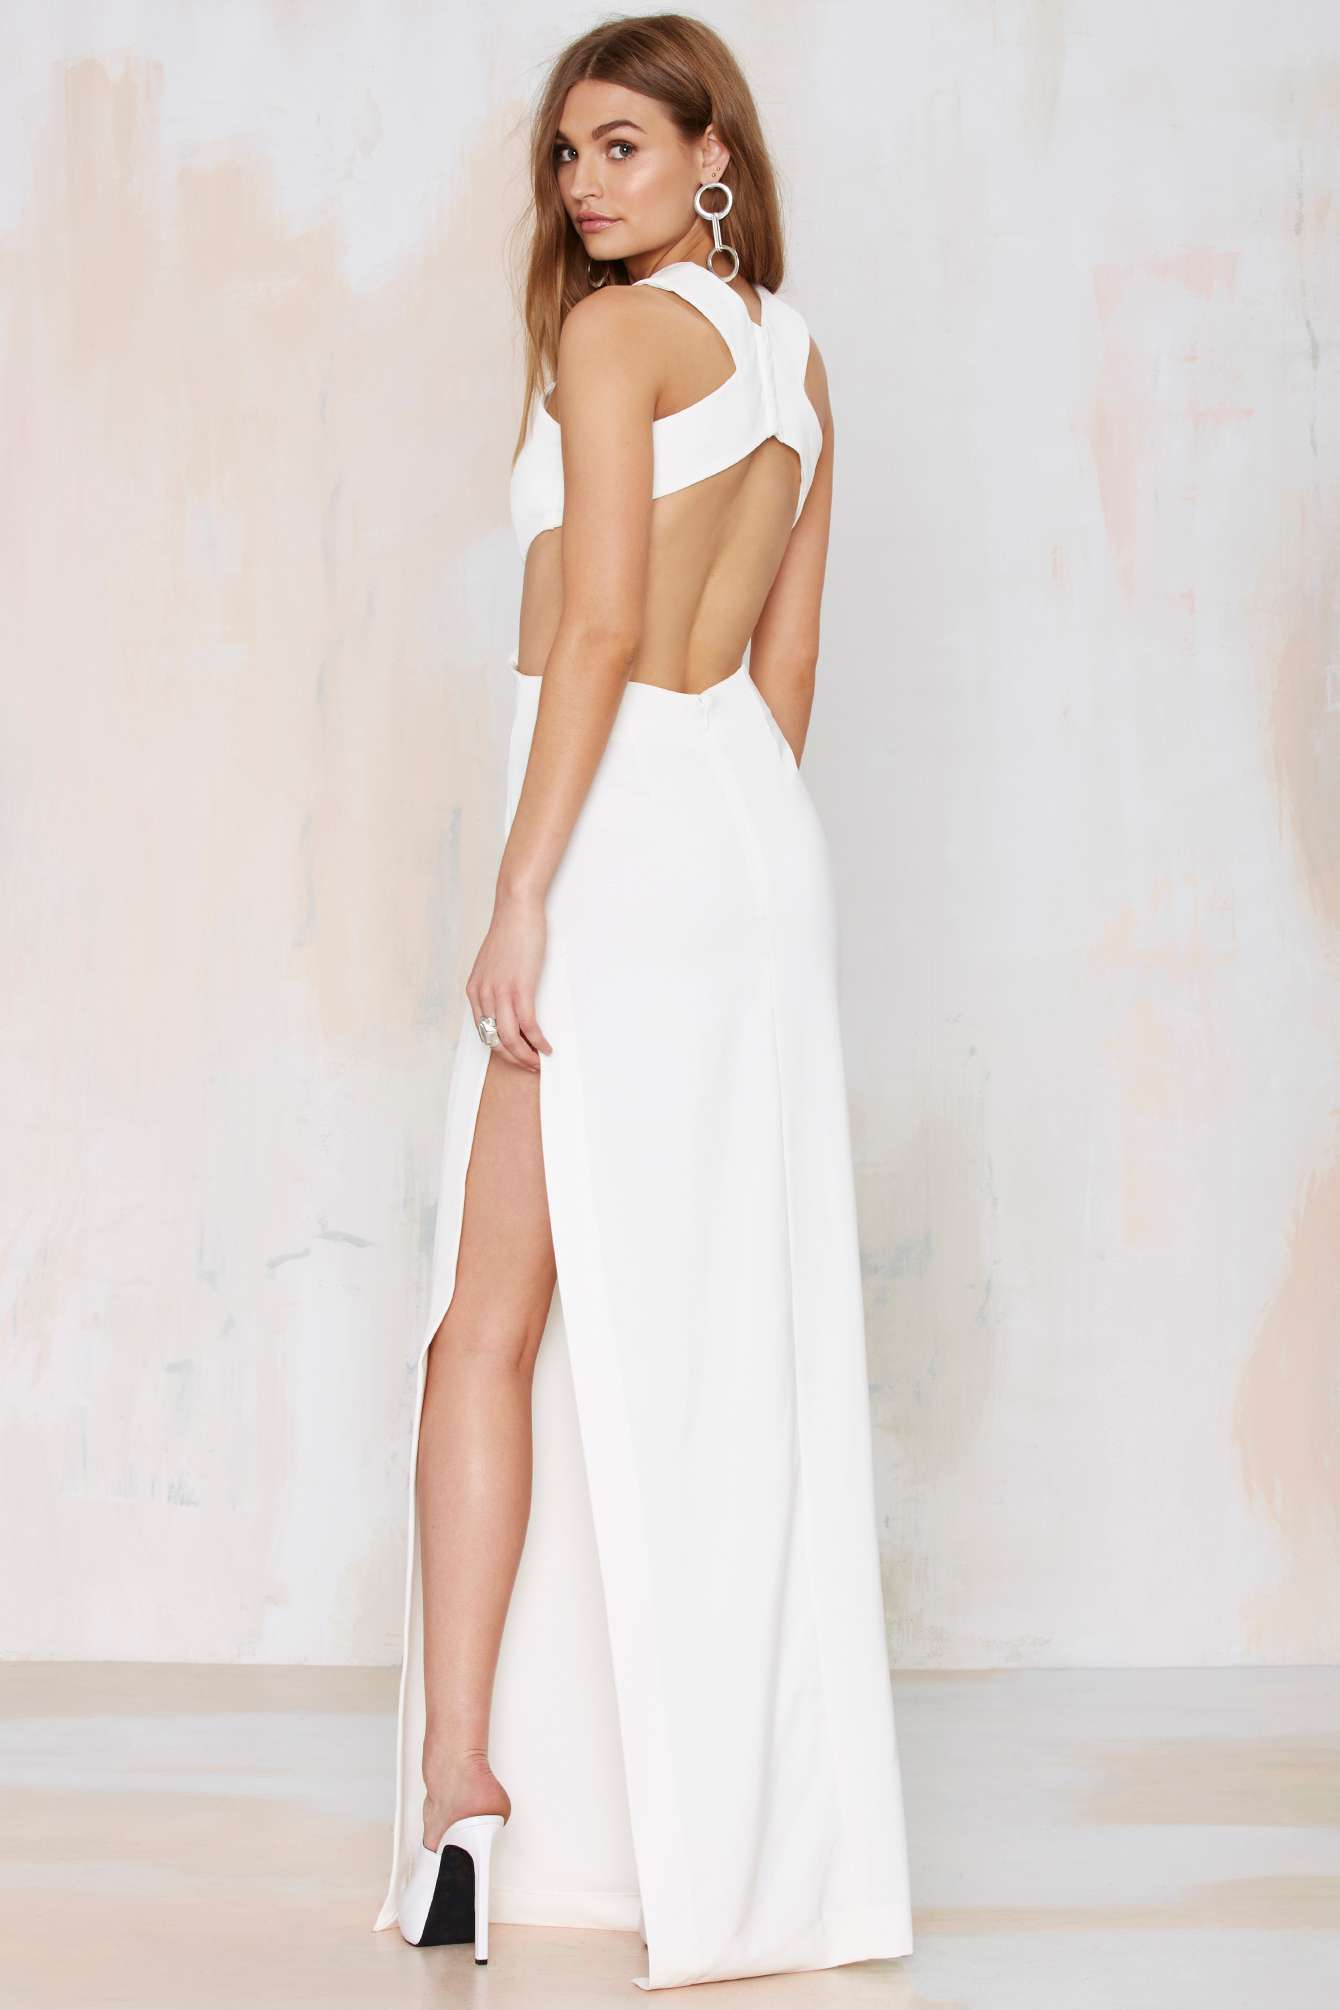 Nasty Gal Solace London Mona Cutout Maxi Dress In White Lyst